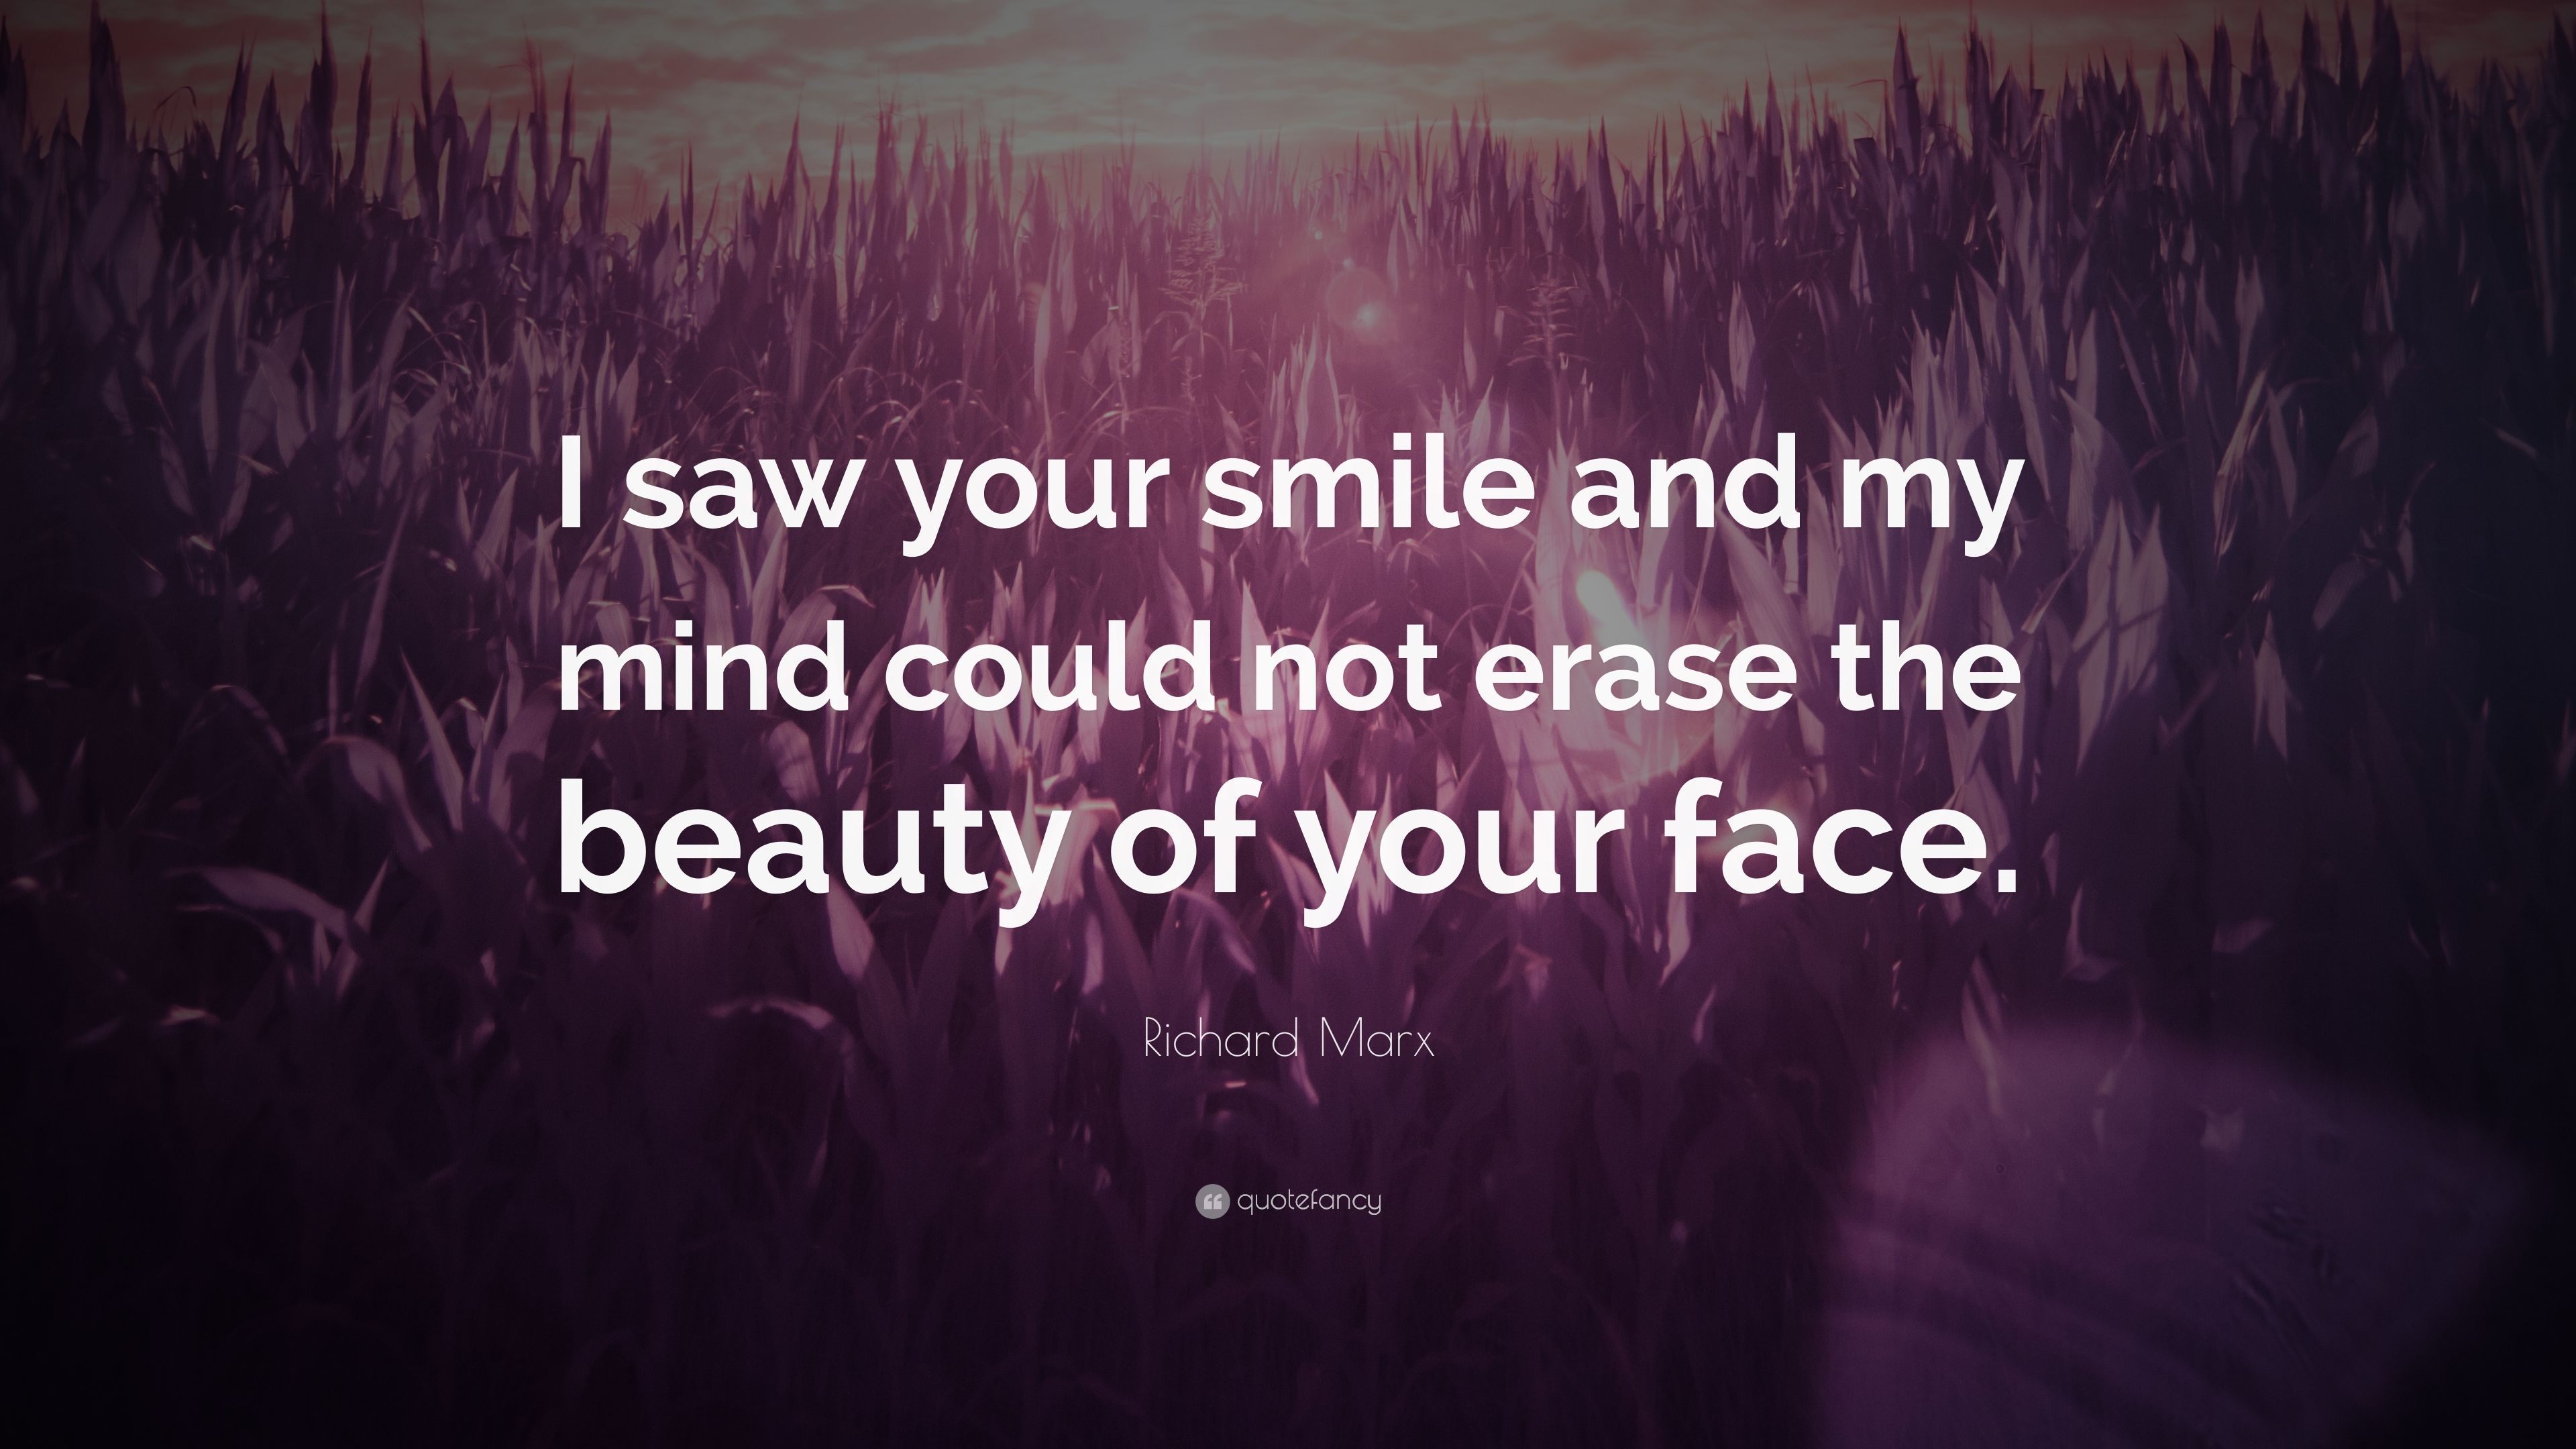 Richard Marx Quote I Saw Your Smile And My Mind Could Not Erase